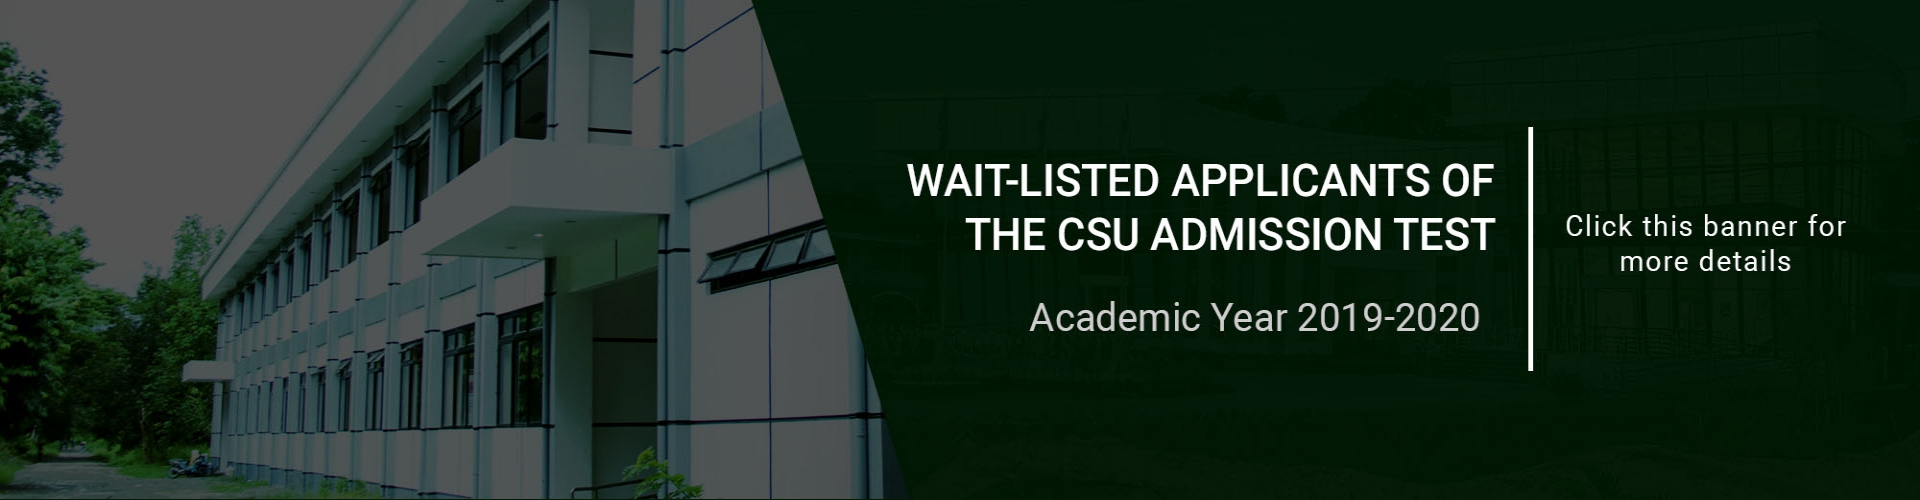 Wait-listed applicants of the CSU Admission Test2019